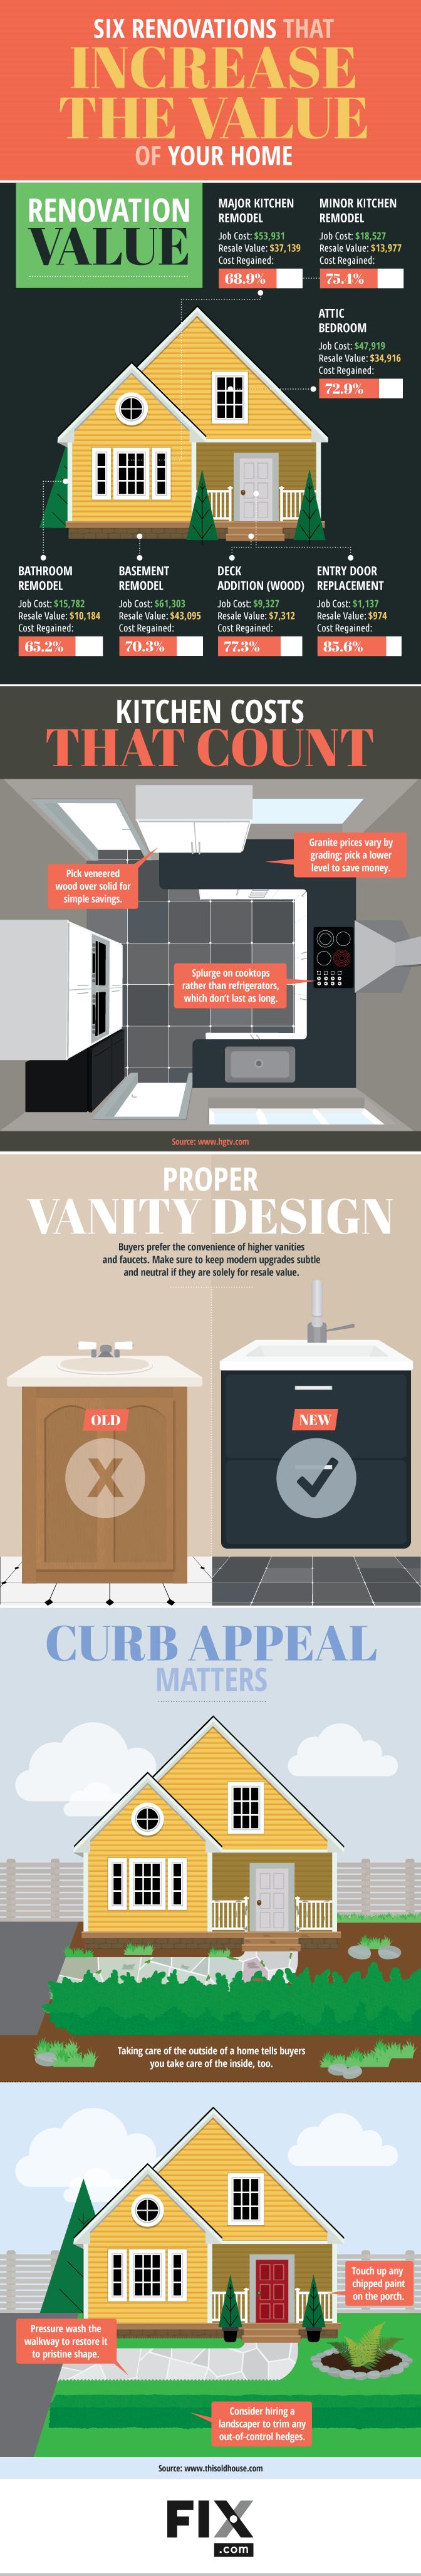 Six Renovations that Actually Increase the Value of Your Home #Infographic